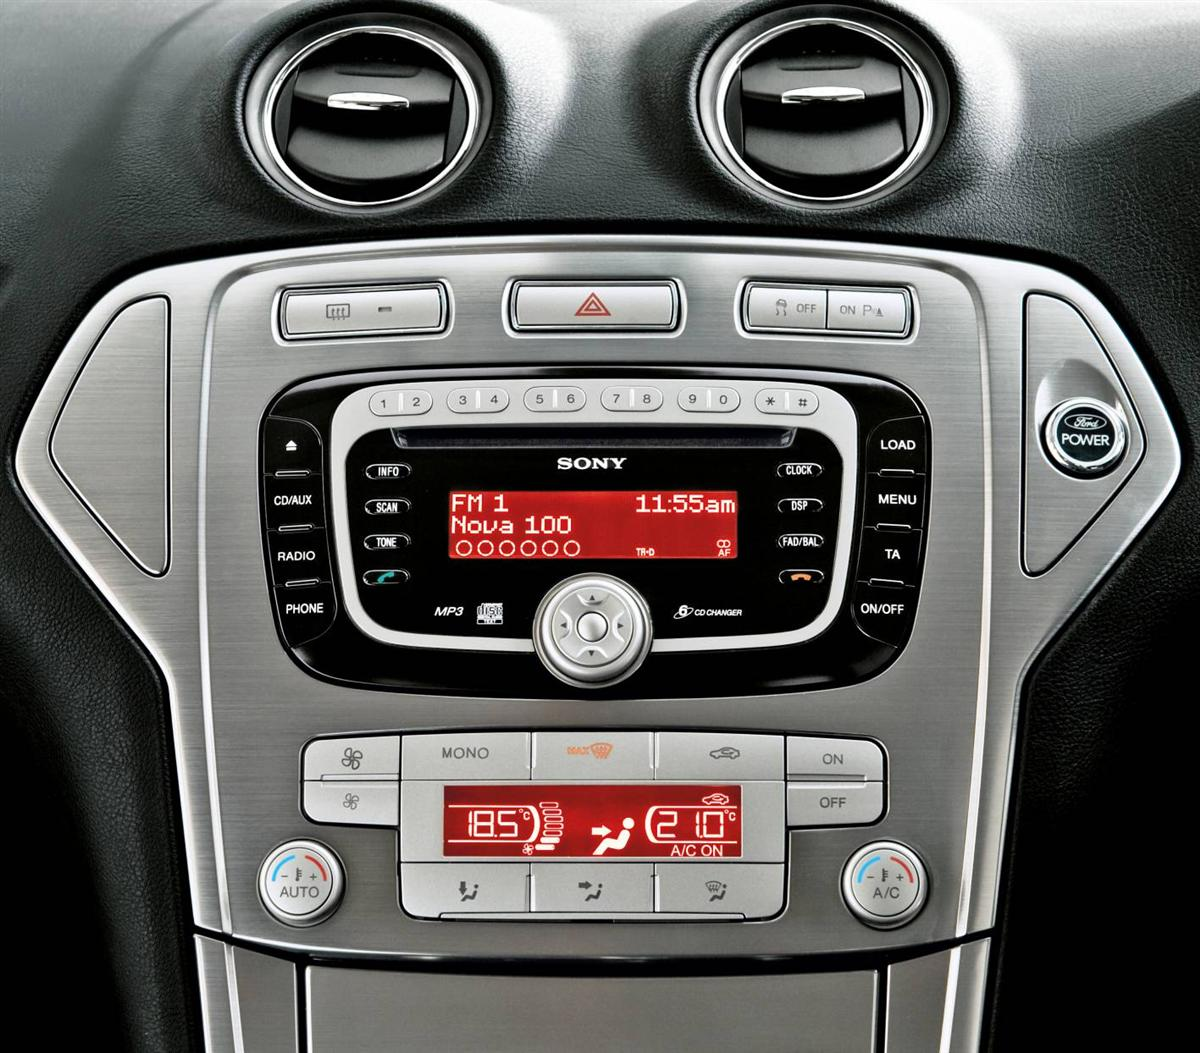 2009_ford-mondeo_mb_features_11.jpg